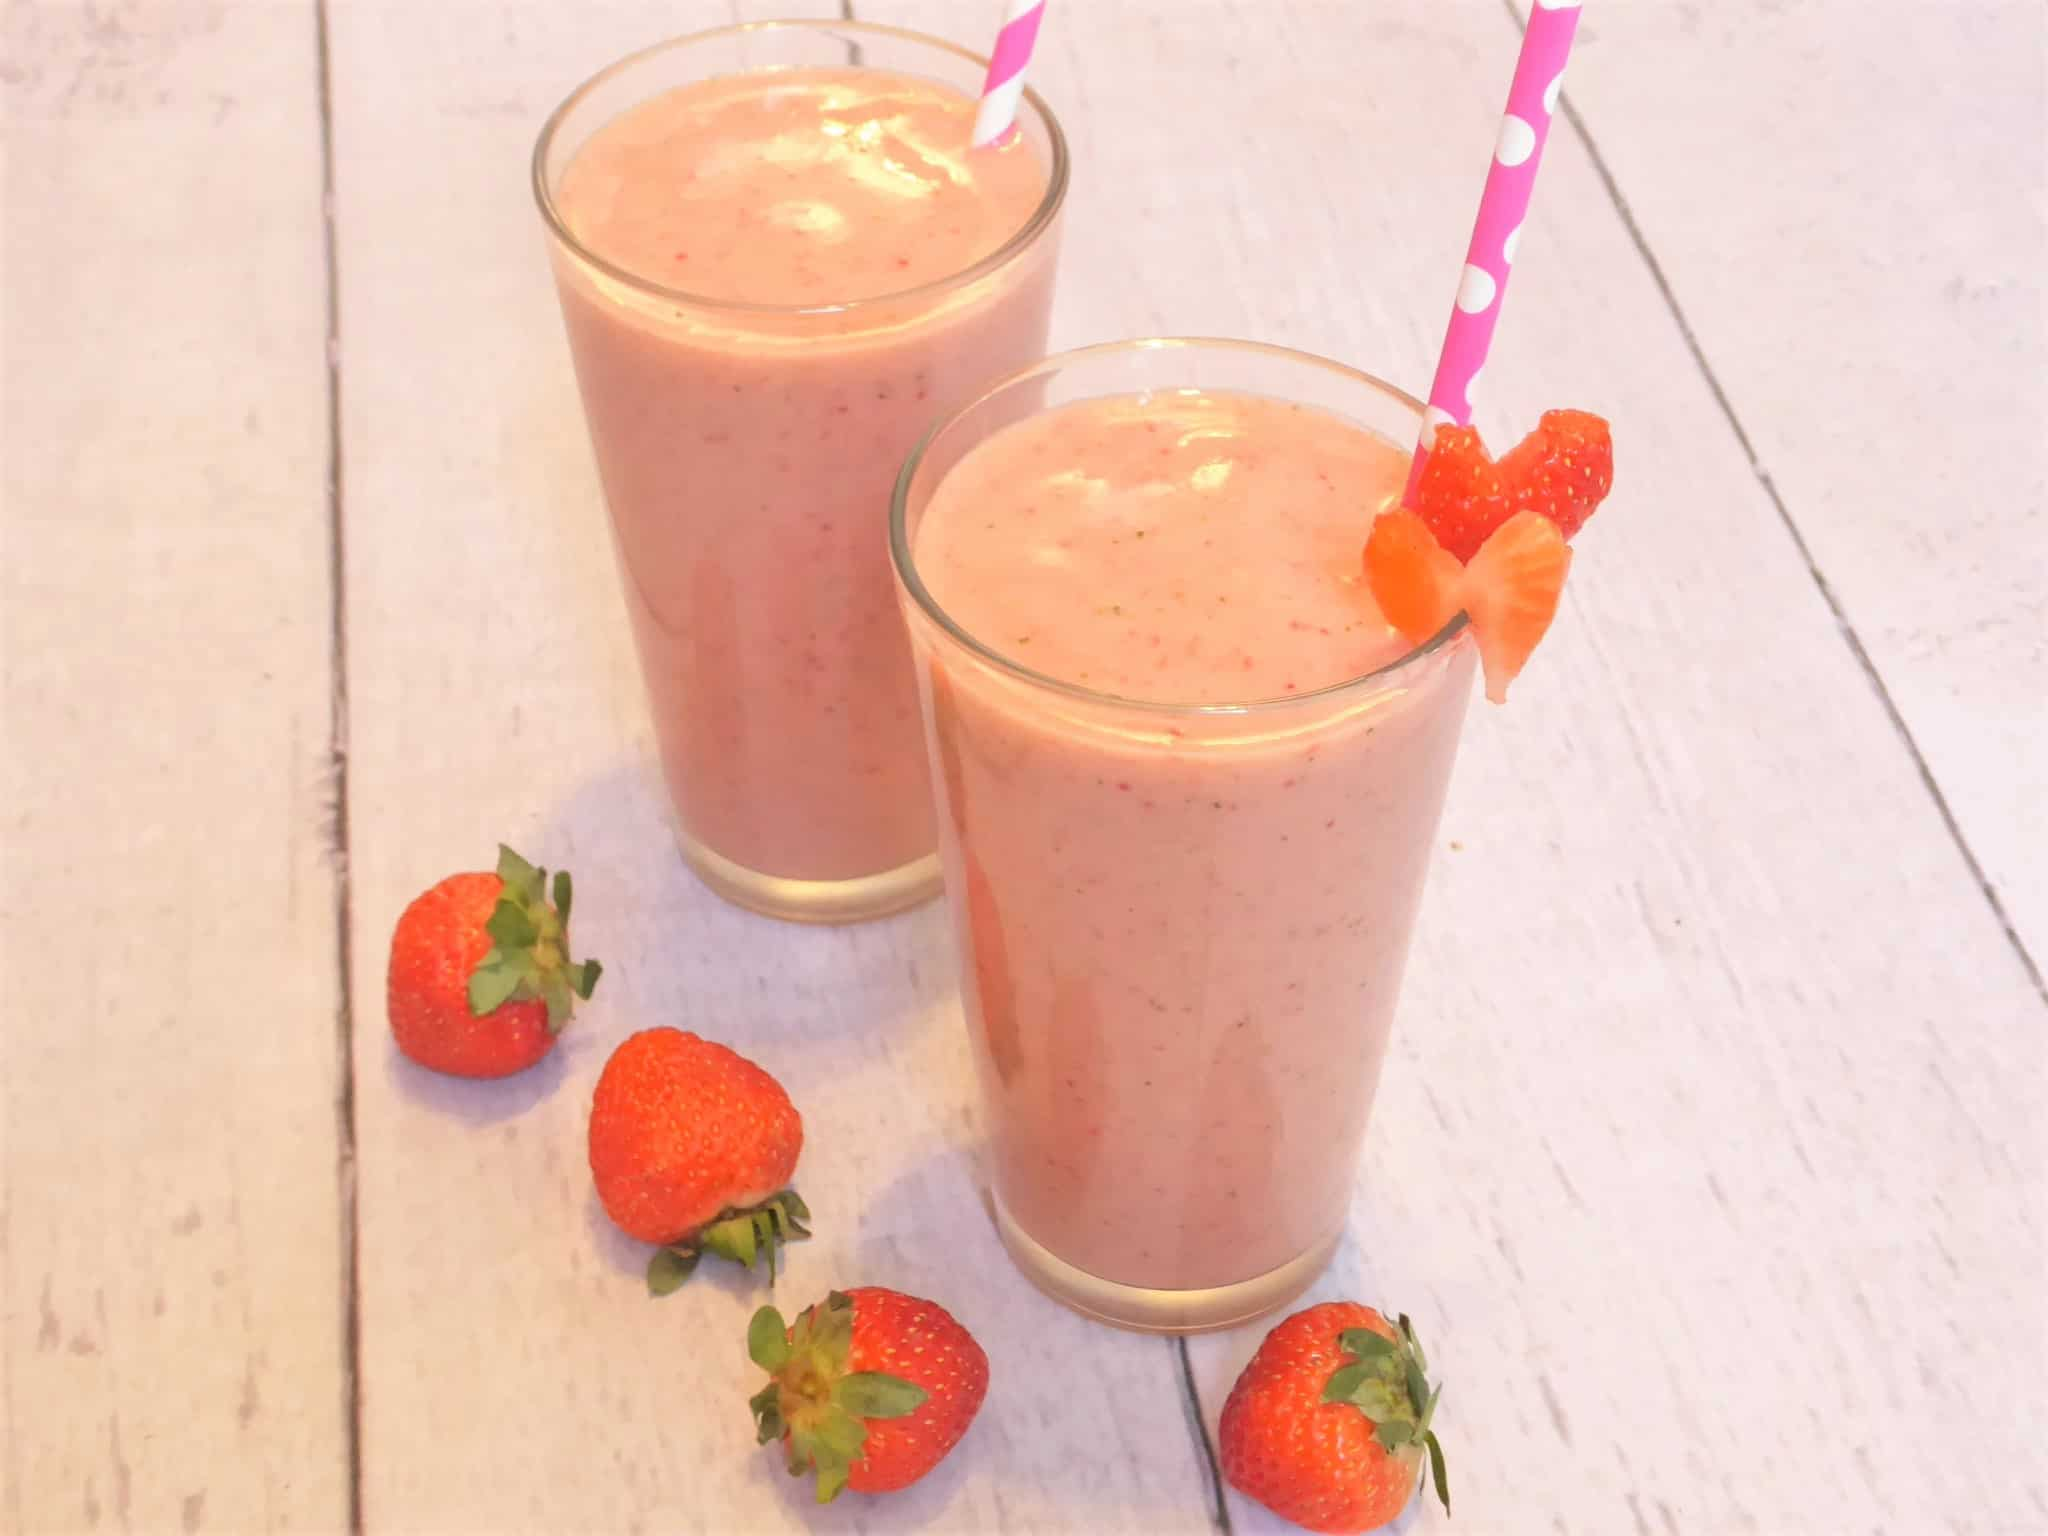 Strawberry Banana Smoothie Recipe